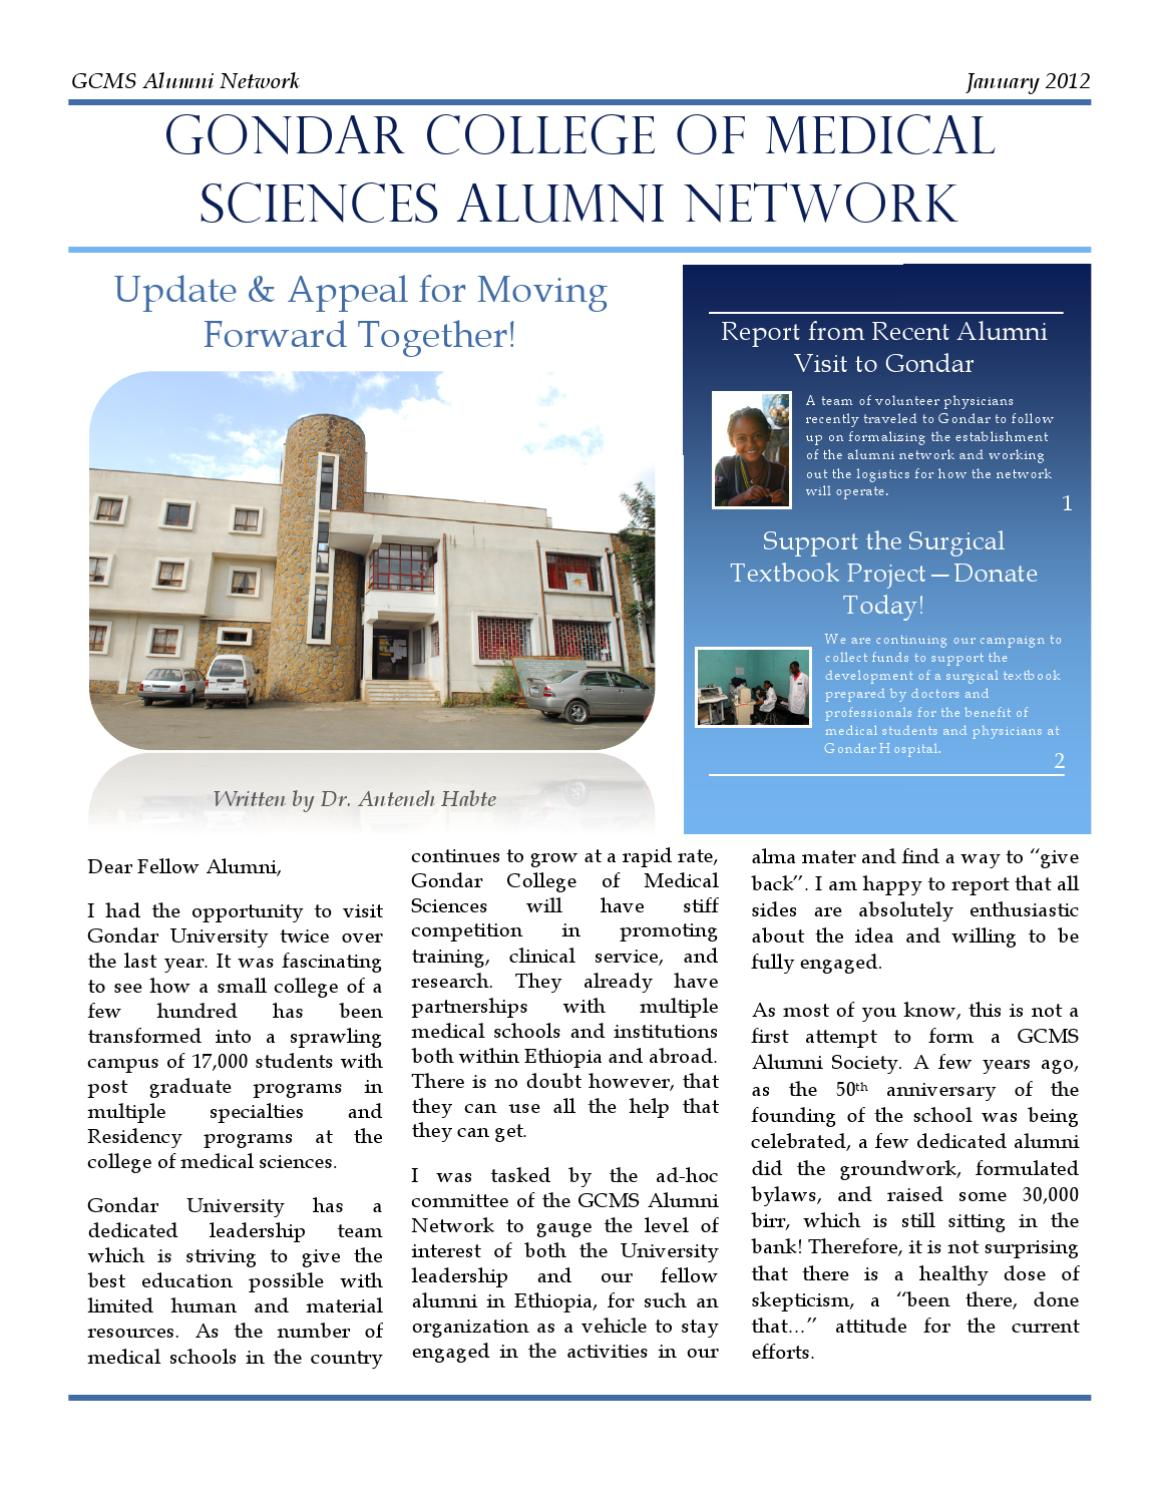 Gondar Medical College Alumni Report January 2012 by